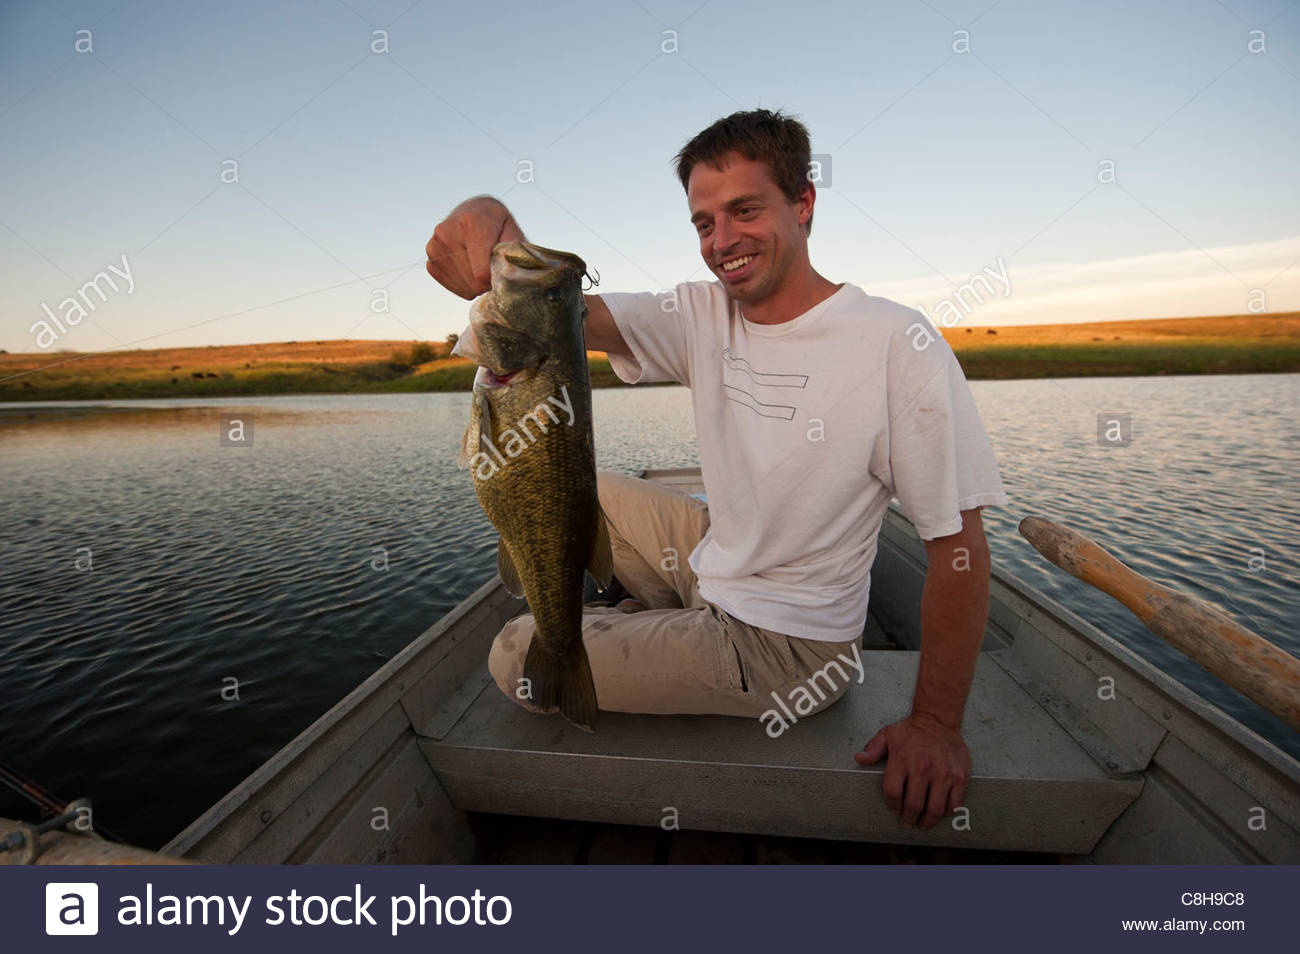 A man holds a fish he just caught at a small pond in Valparaiso, NE. - Stock Image